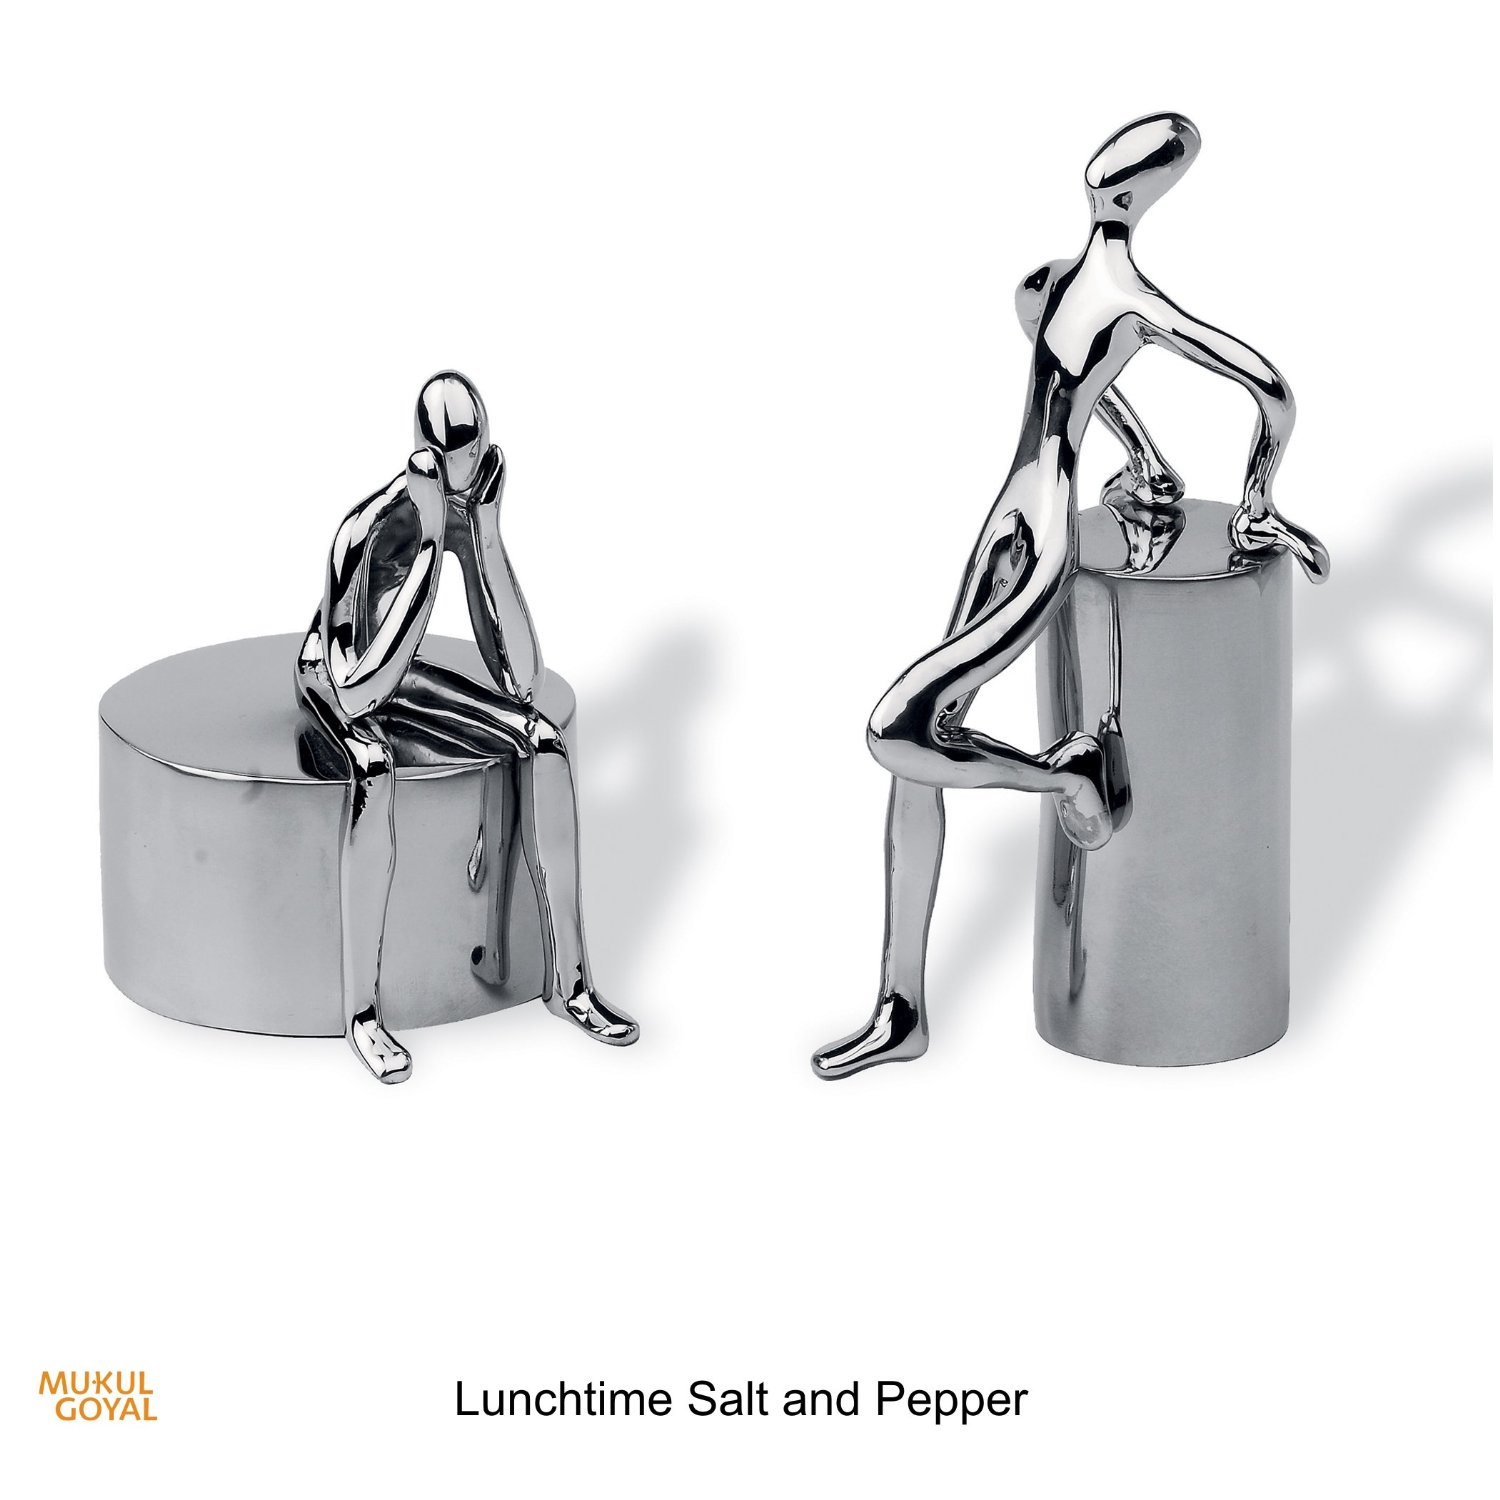 Mukul-Goyal-Lunchtime-Salt-Pepper-Set